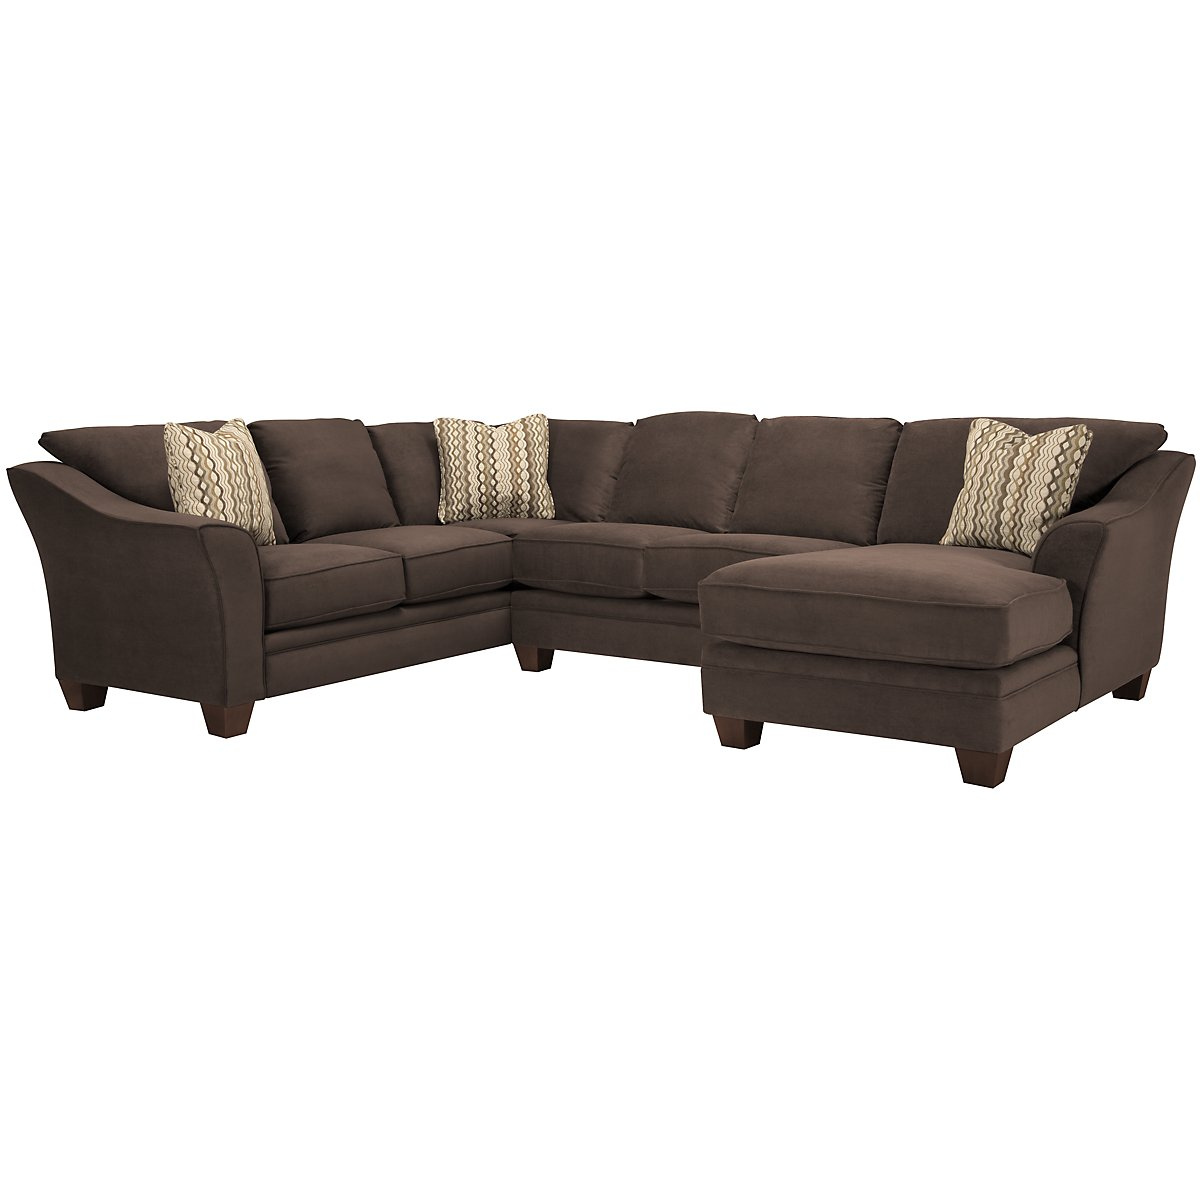 Grant2 Dk Brown Microfiber Right Chaise Sectional